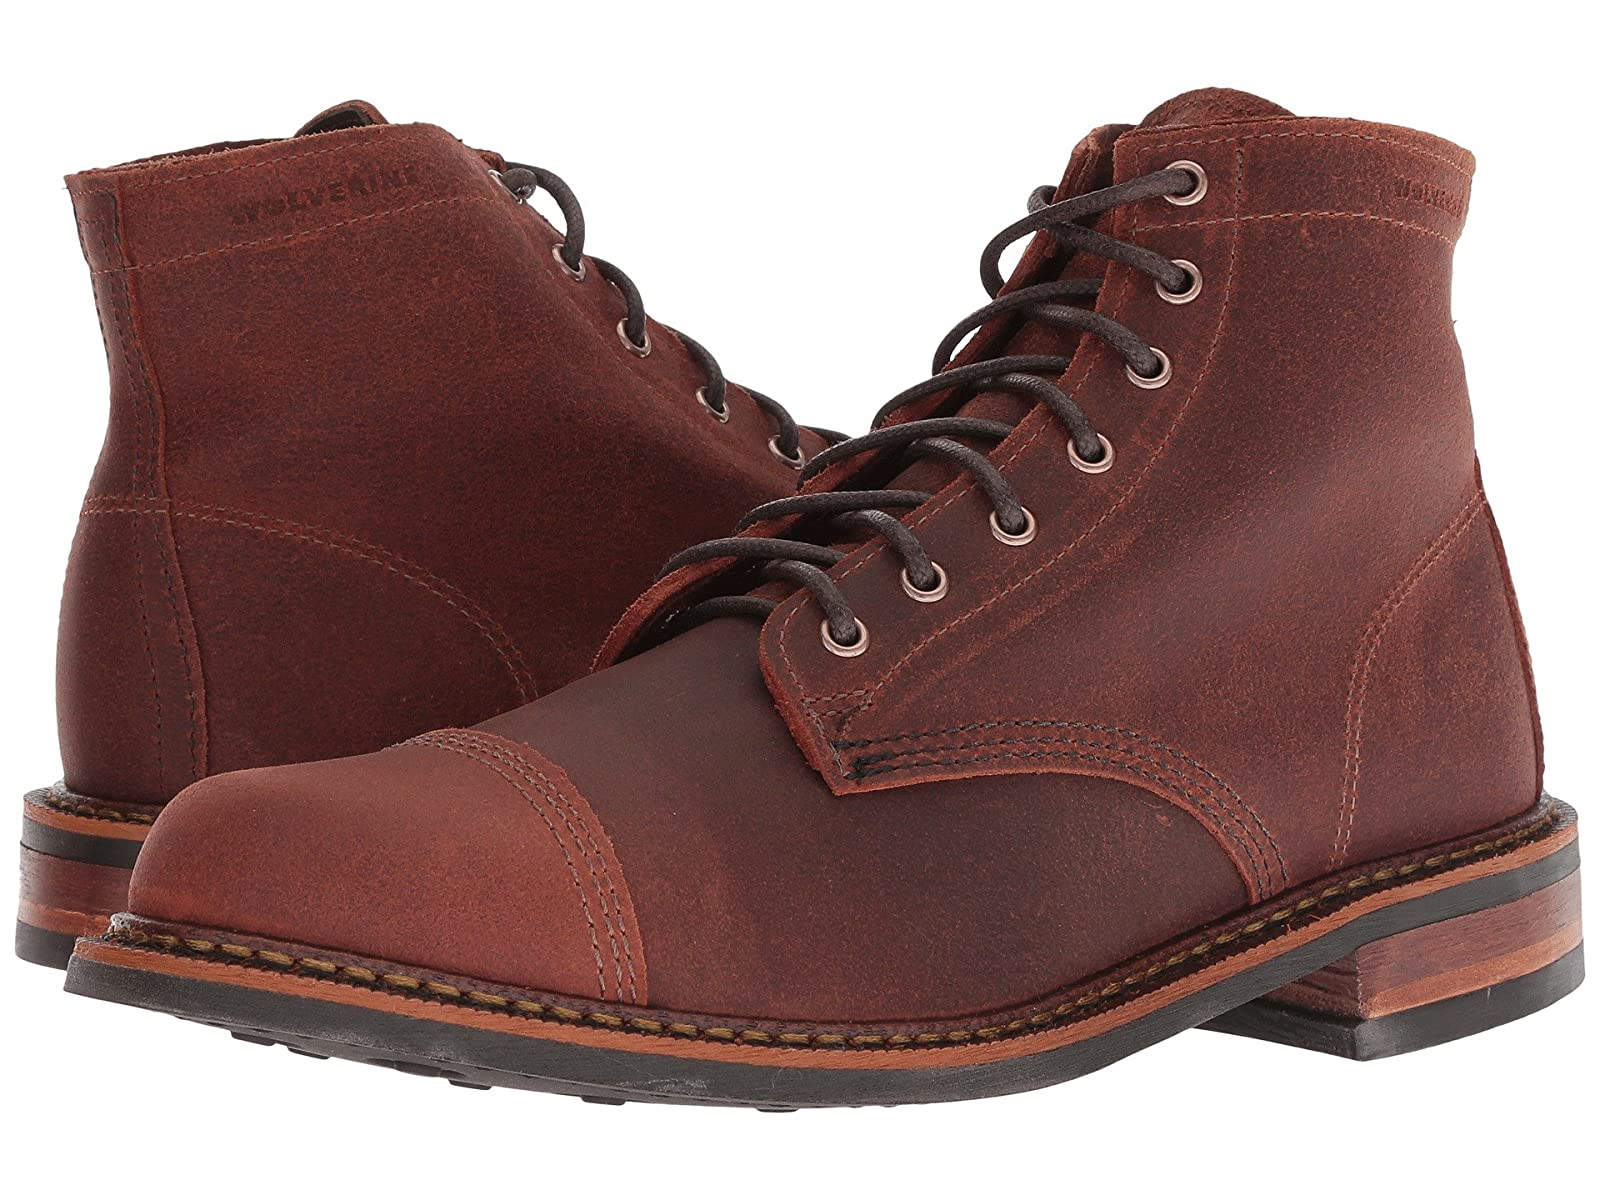 Wolverine GarrettEconomical and quality shoes